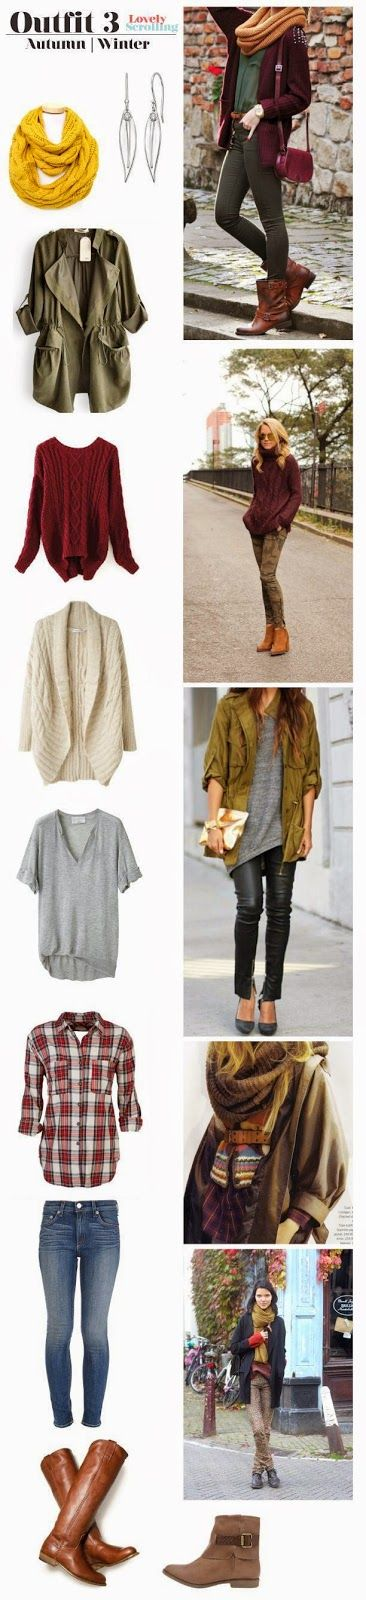 Yesss! Everything about this. Comfy, casual and cute. Love all the fall/ neutral colors. MINUS the mustard yellow scarf. Not a fan of mustard yellow.